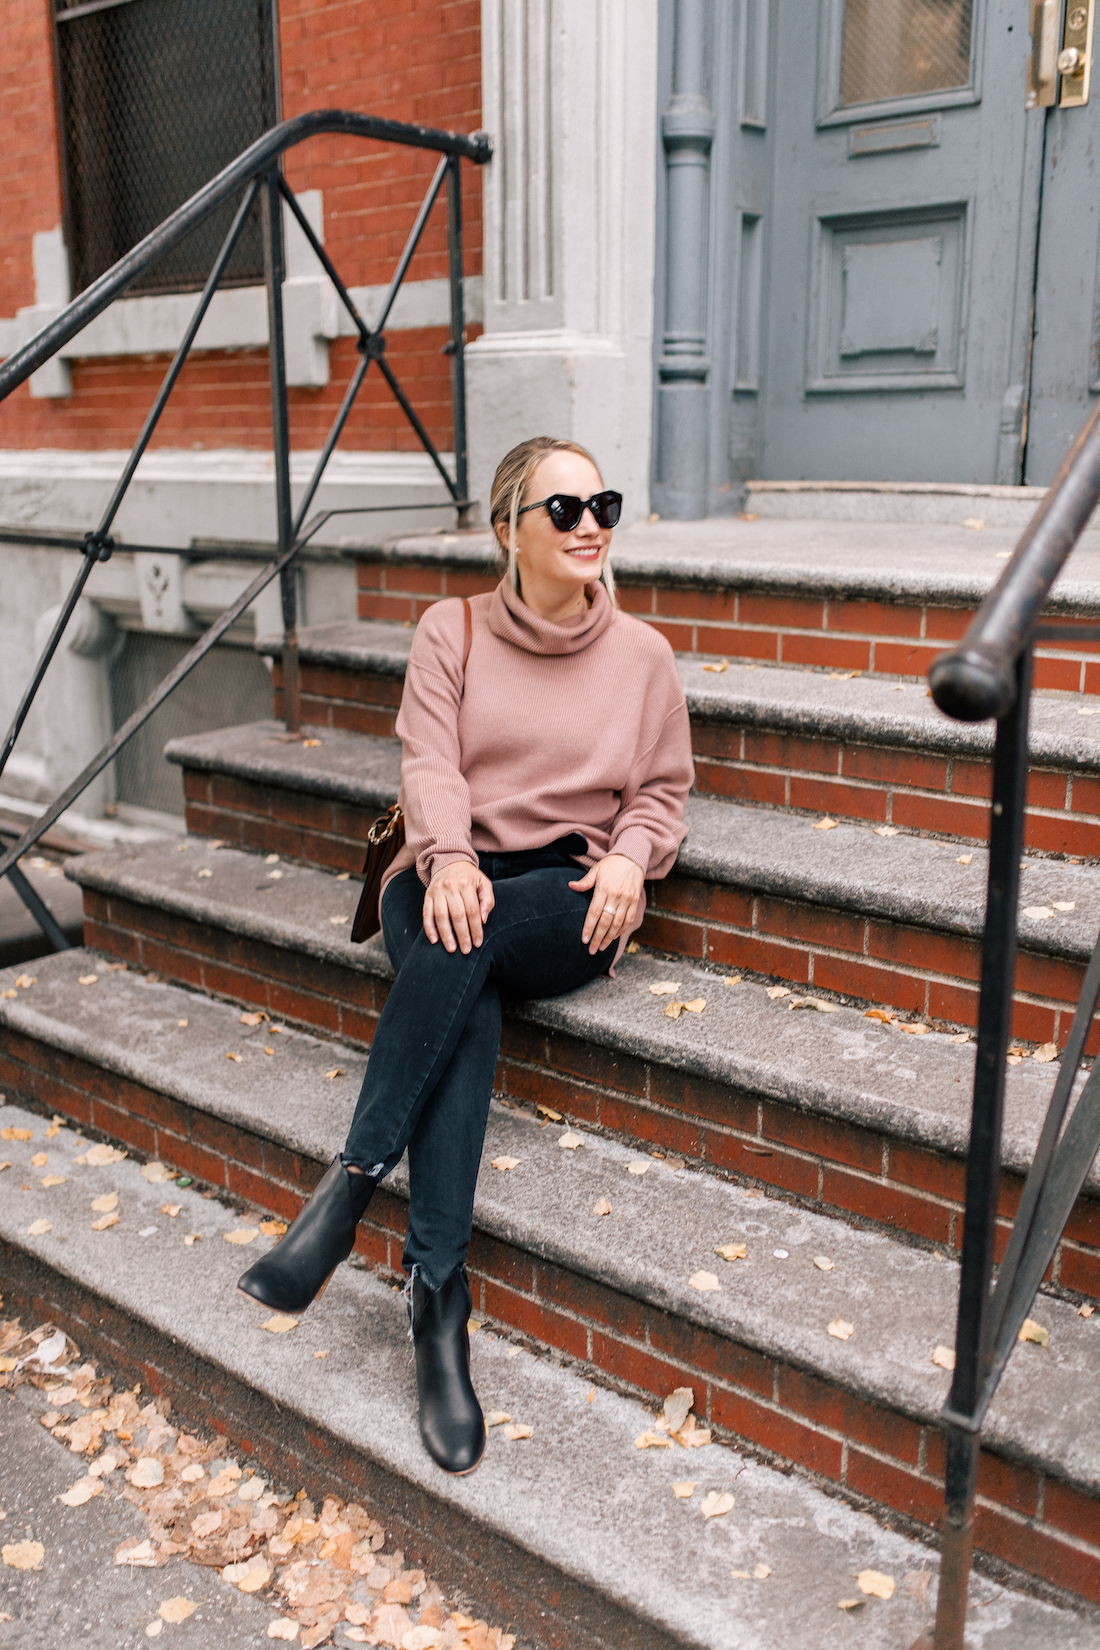 Free People Softly Structured Tunic Sweater // American Eagle Jeans // Gucci Belt // Soludos Boots // Chloe Faye Bag // Karen Walker Sunglasses // Charlotte Tilbury Lipstick